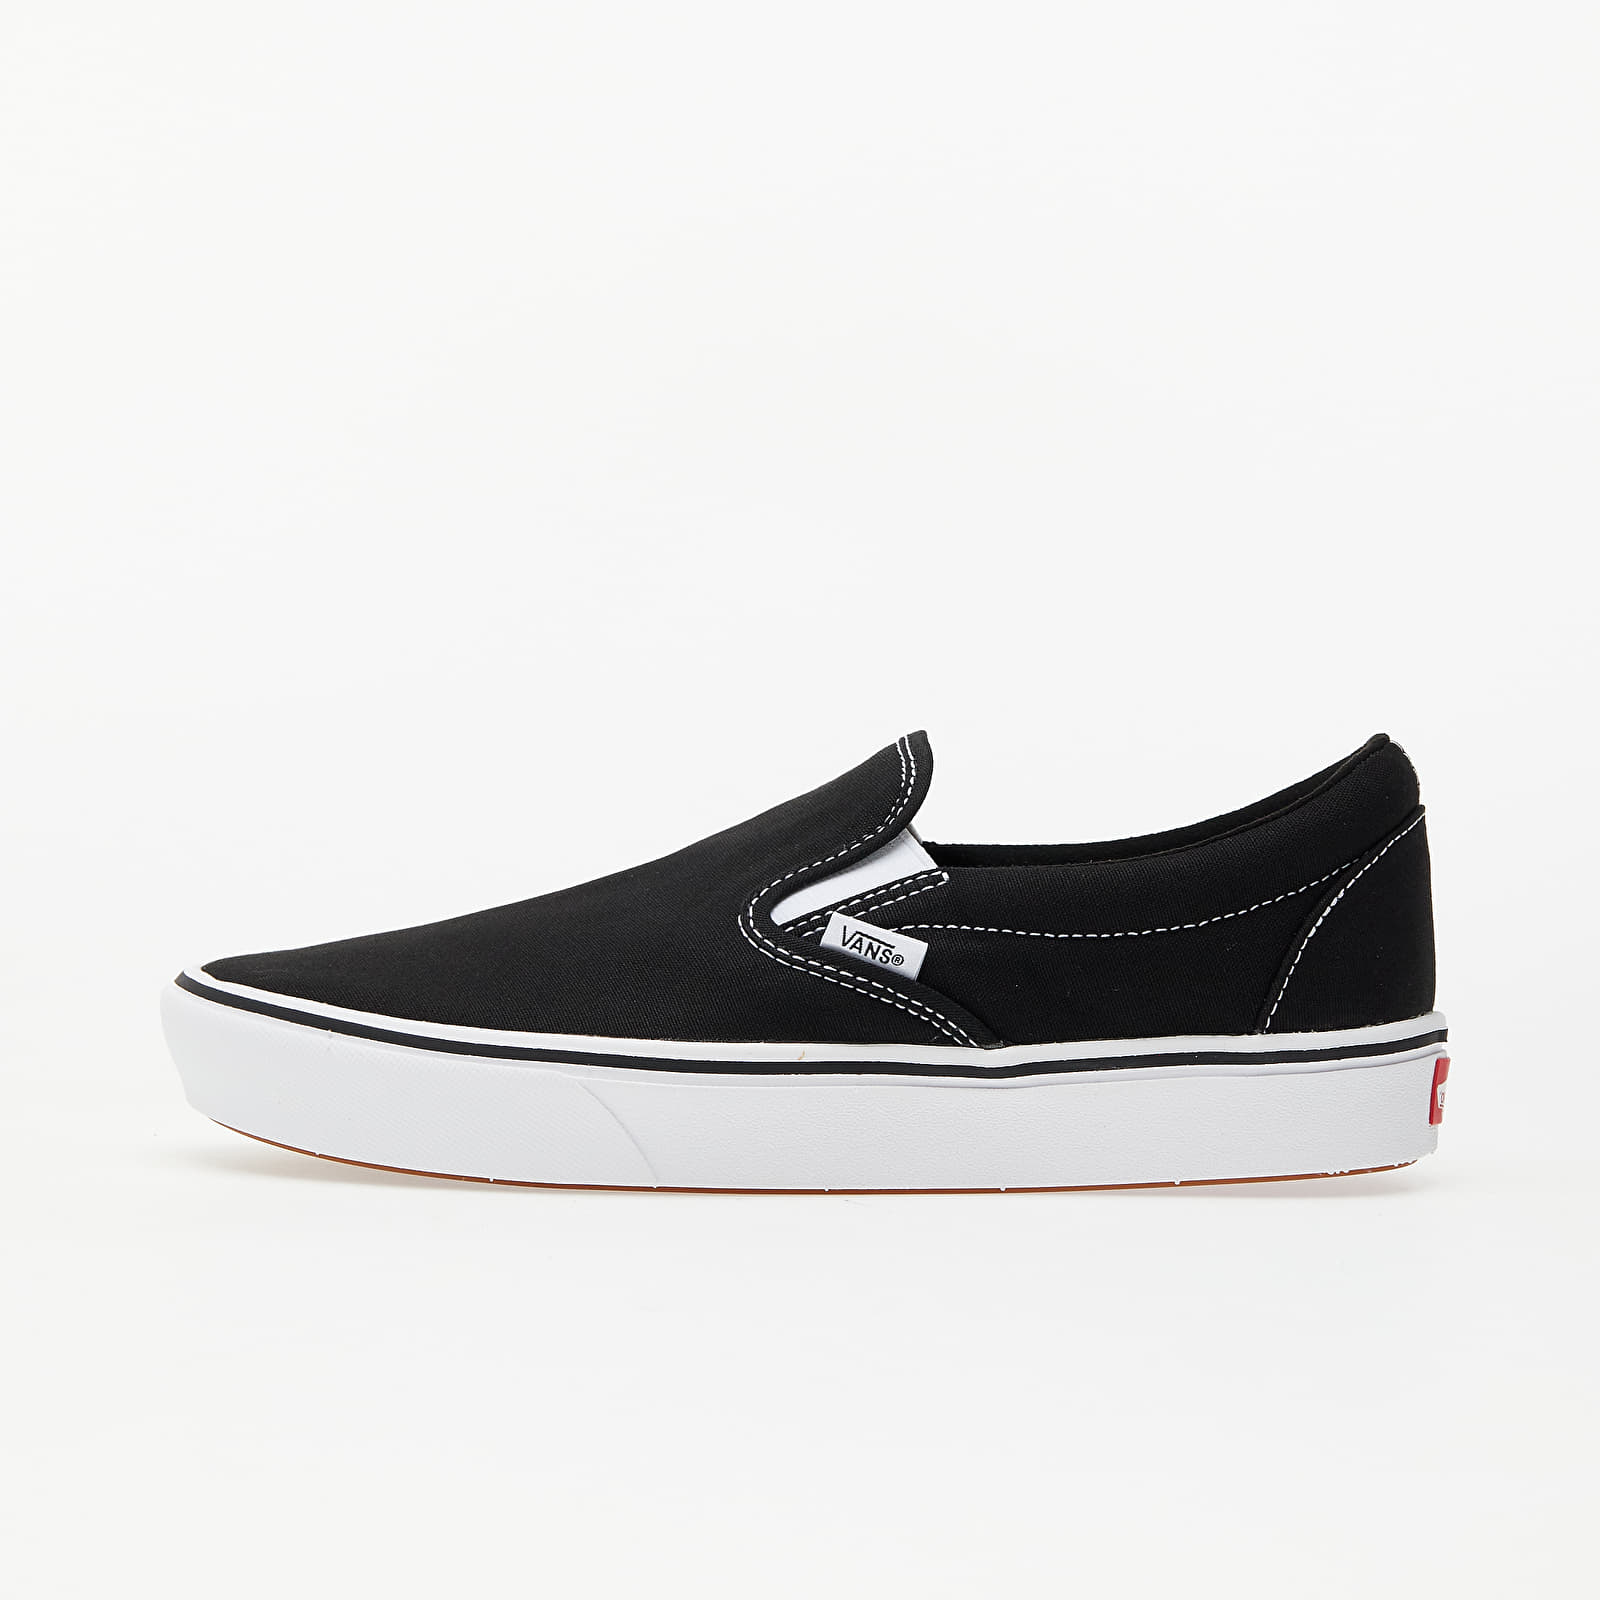 Vans ComfyCush Slip-On (Classic) Black/ True White EUR 40